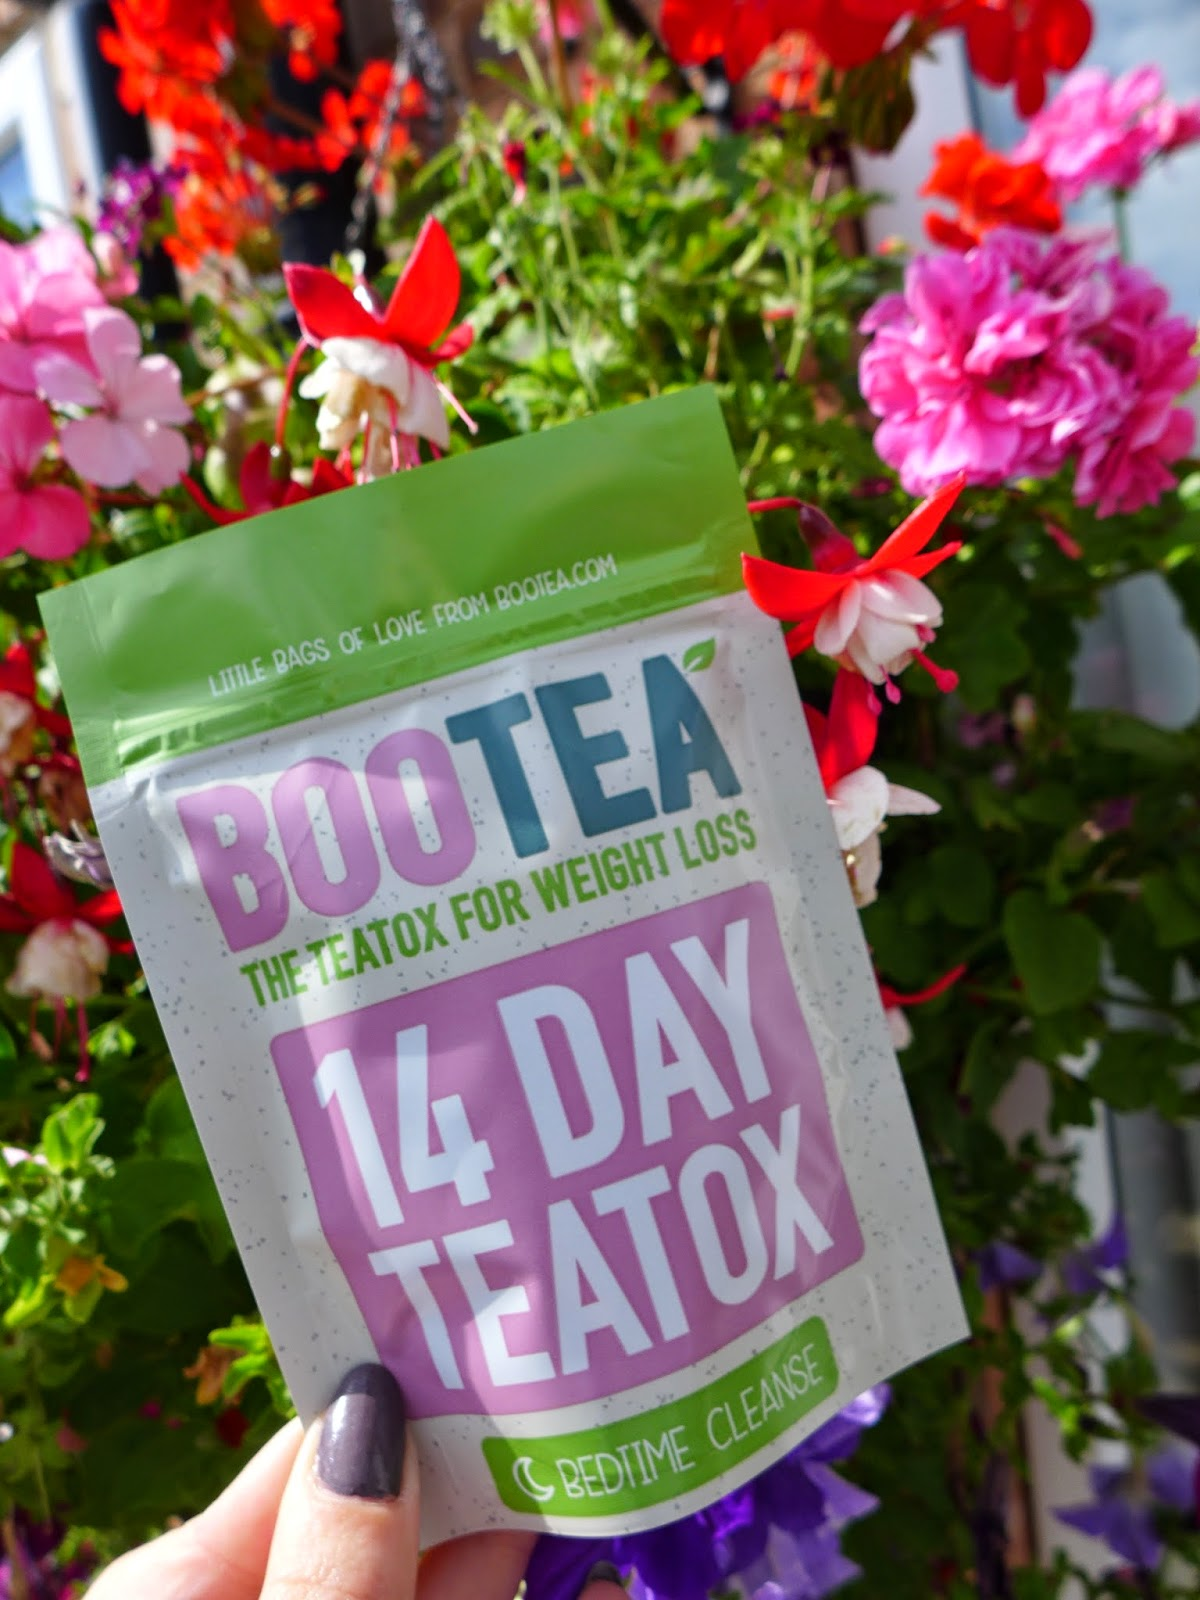 Bootea Night Time Cleanse